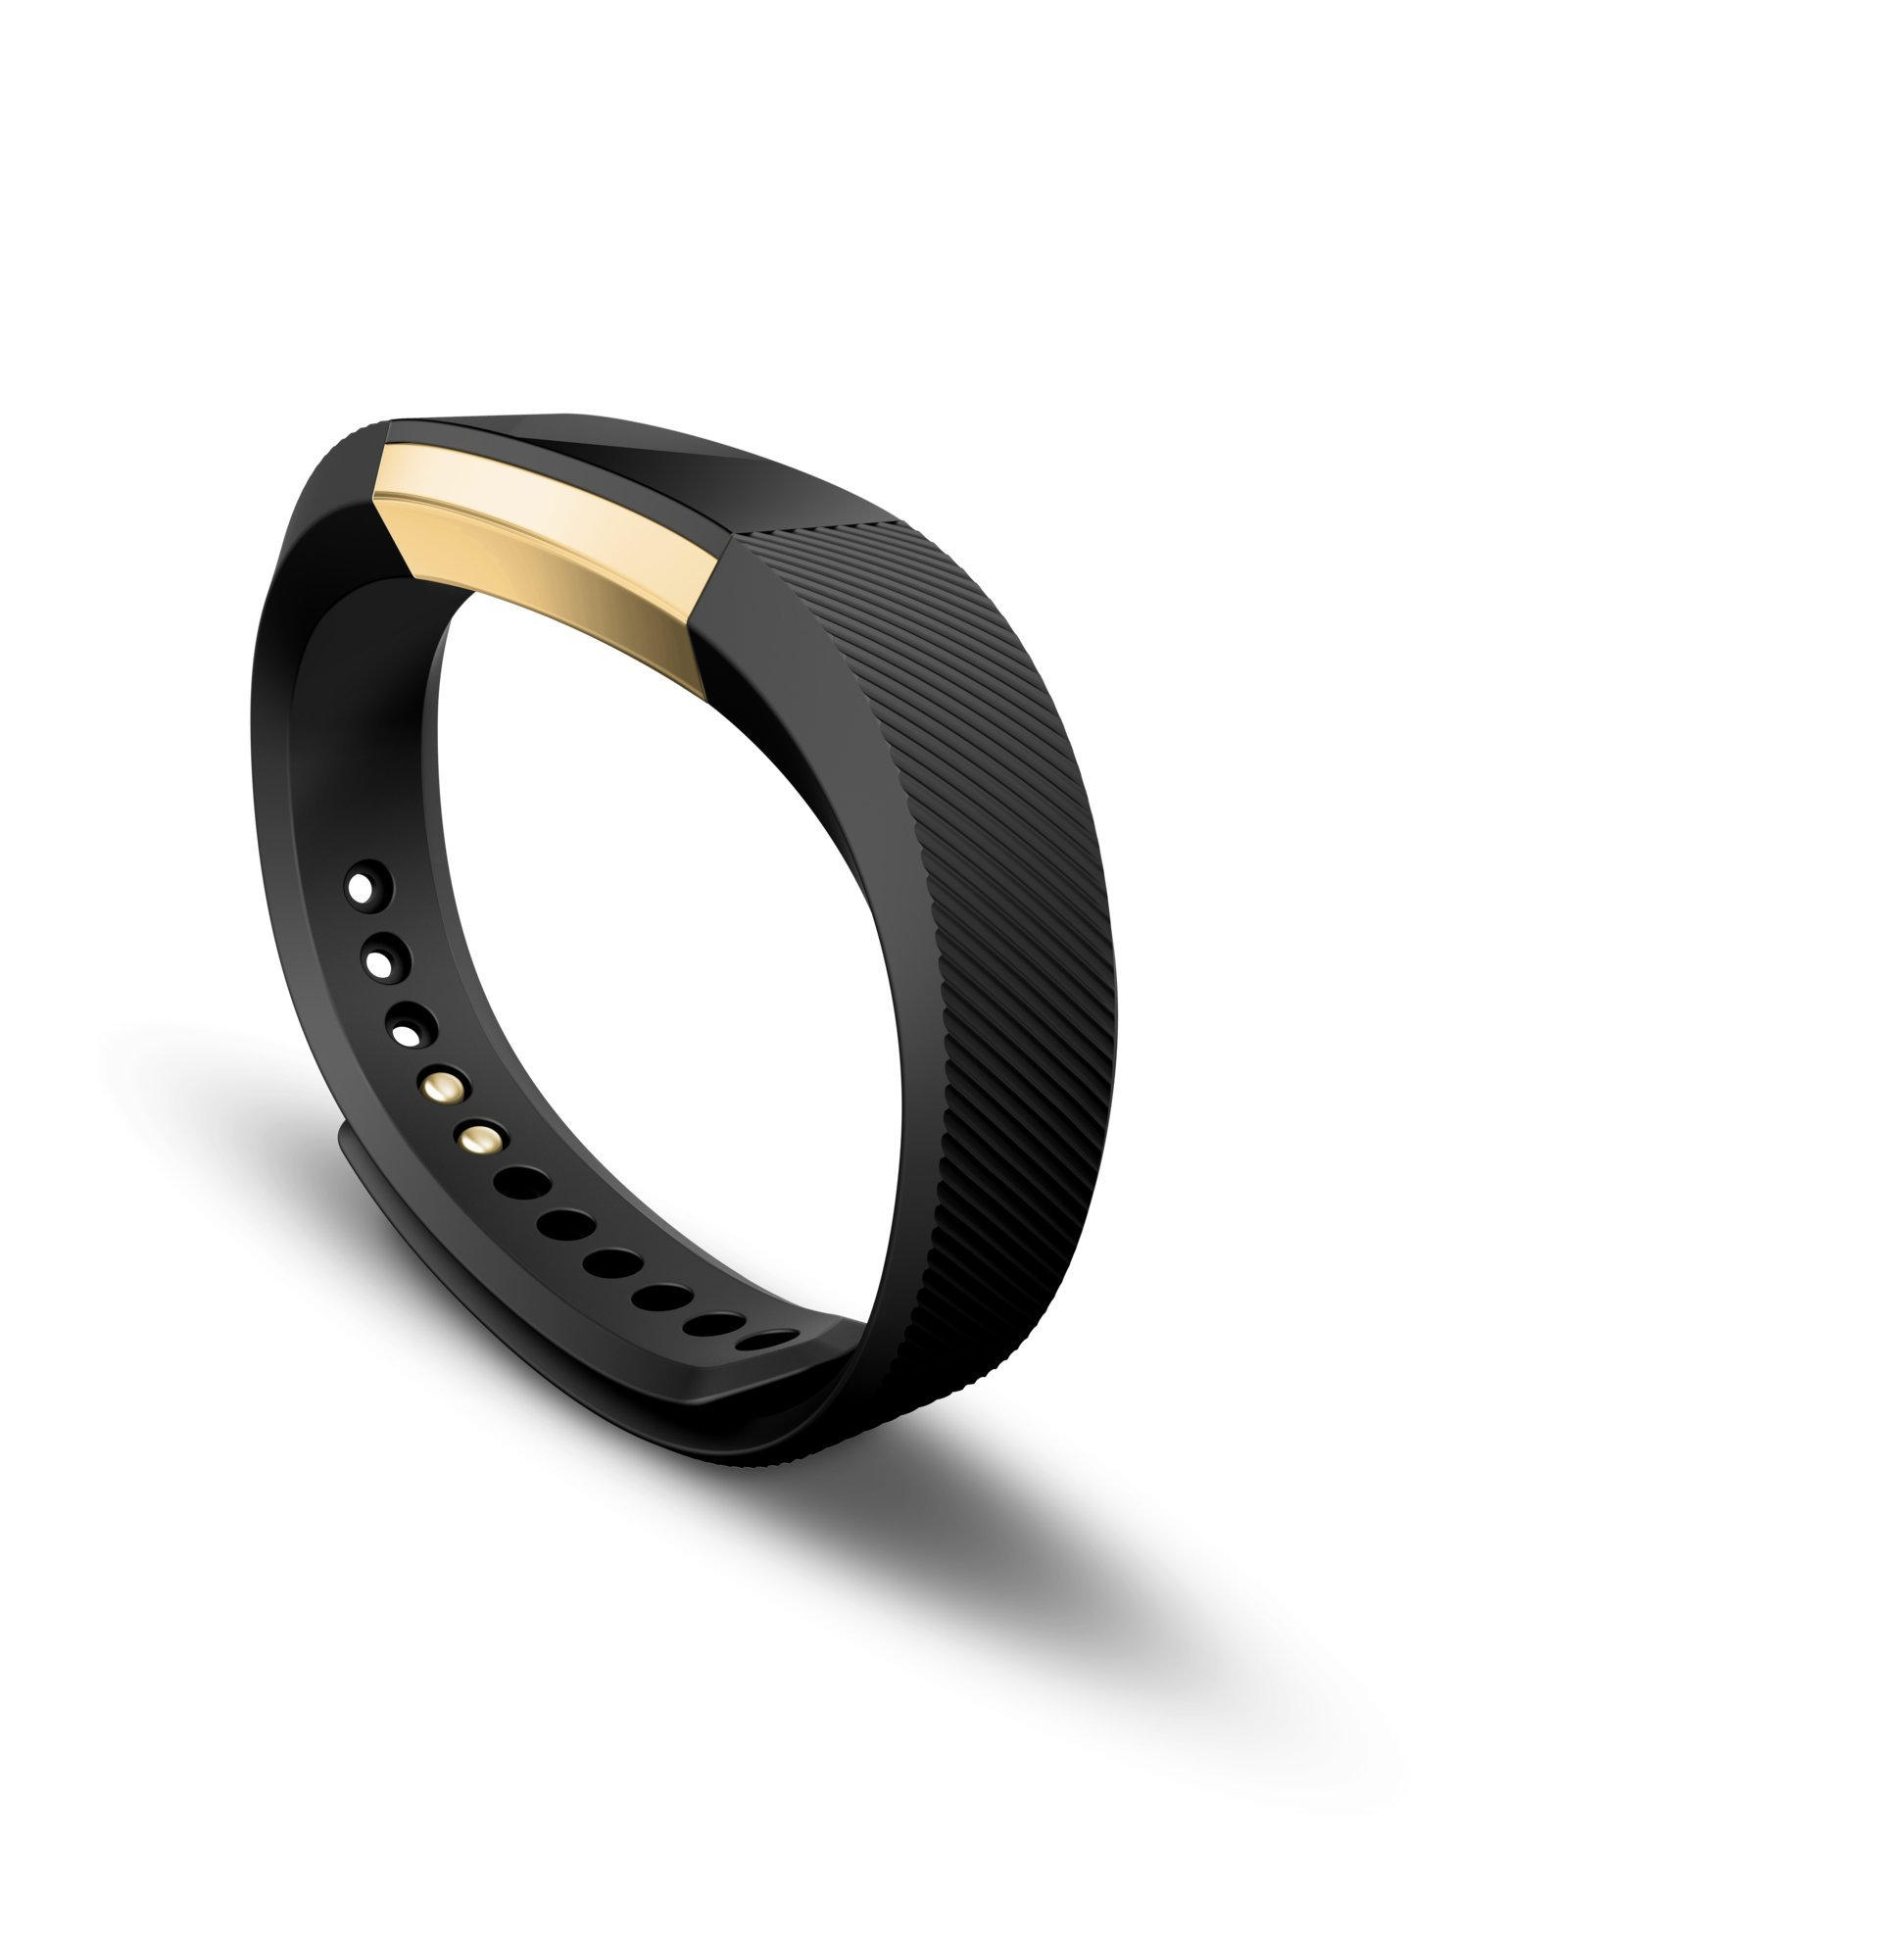 Fitbit Alta Fitness Tracker, Special Edition Gold, Black, Small (US Version) by Fitbit (Image #3)